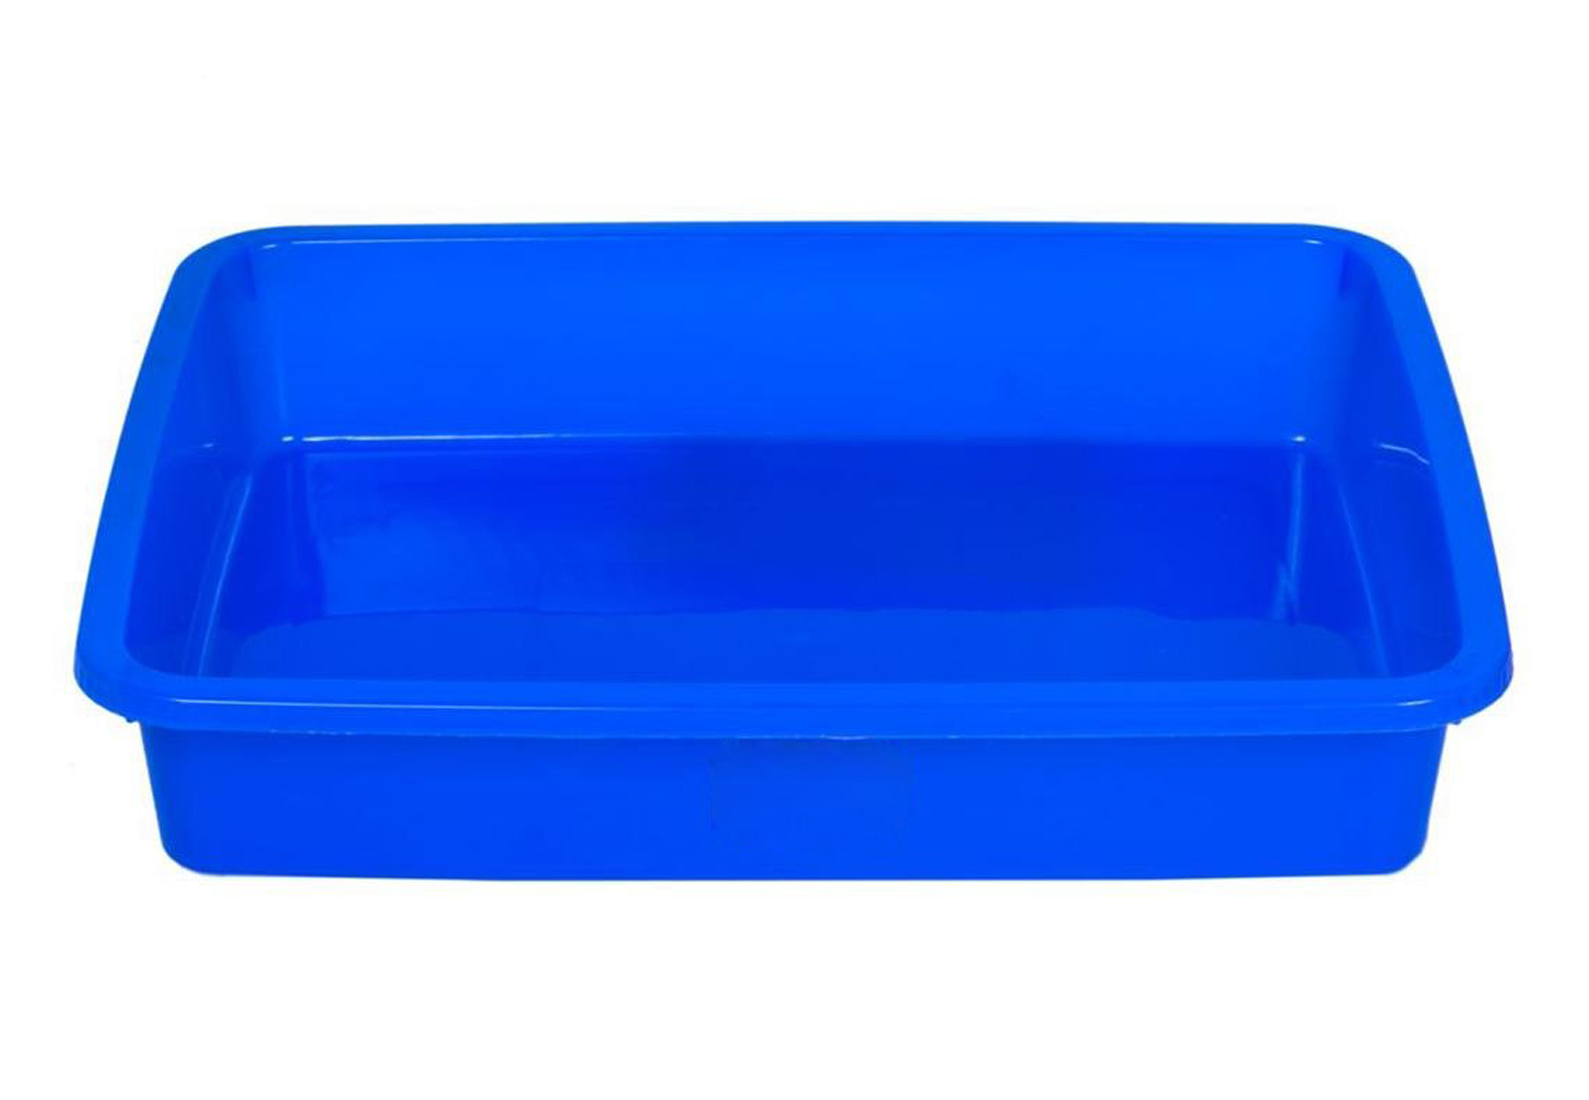 Kuber Industries Plastic 3 Pieces Medium Size Stationary Office Tray, File Tray, Document Tray, Paper Tray A4 Documents/Papers/Letters/folders Holder Desk Organizer (Blue)